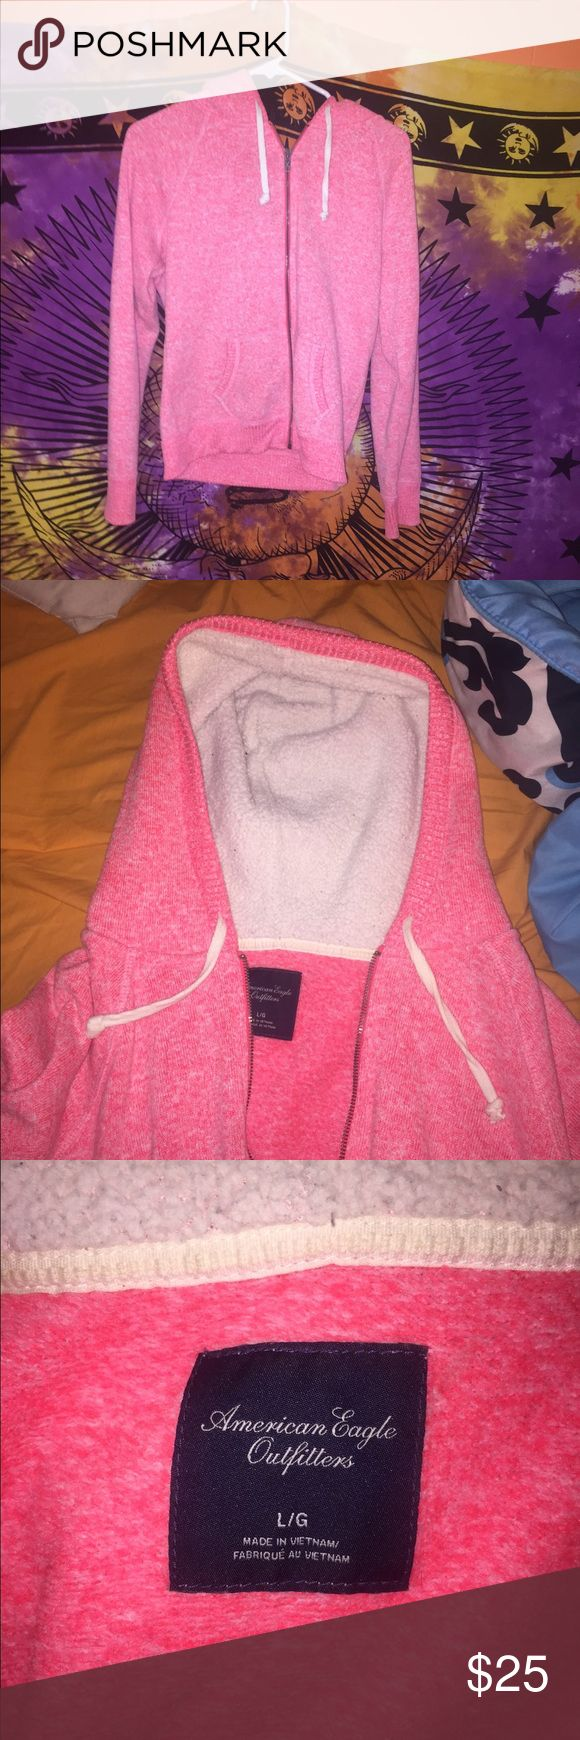 Pink zip up sweatshirt Super warm and great for fall weather! Fuzzy white hood. American Eagle Outfitters Tops Sweatshirts & Hoodies